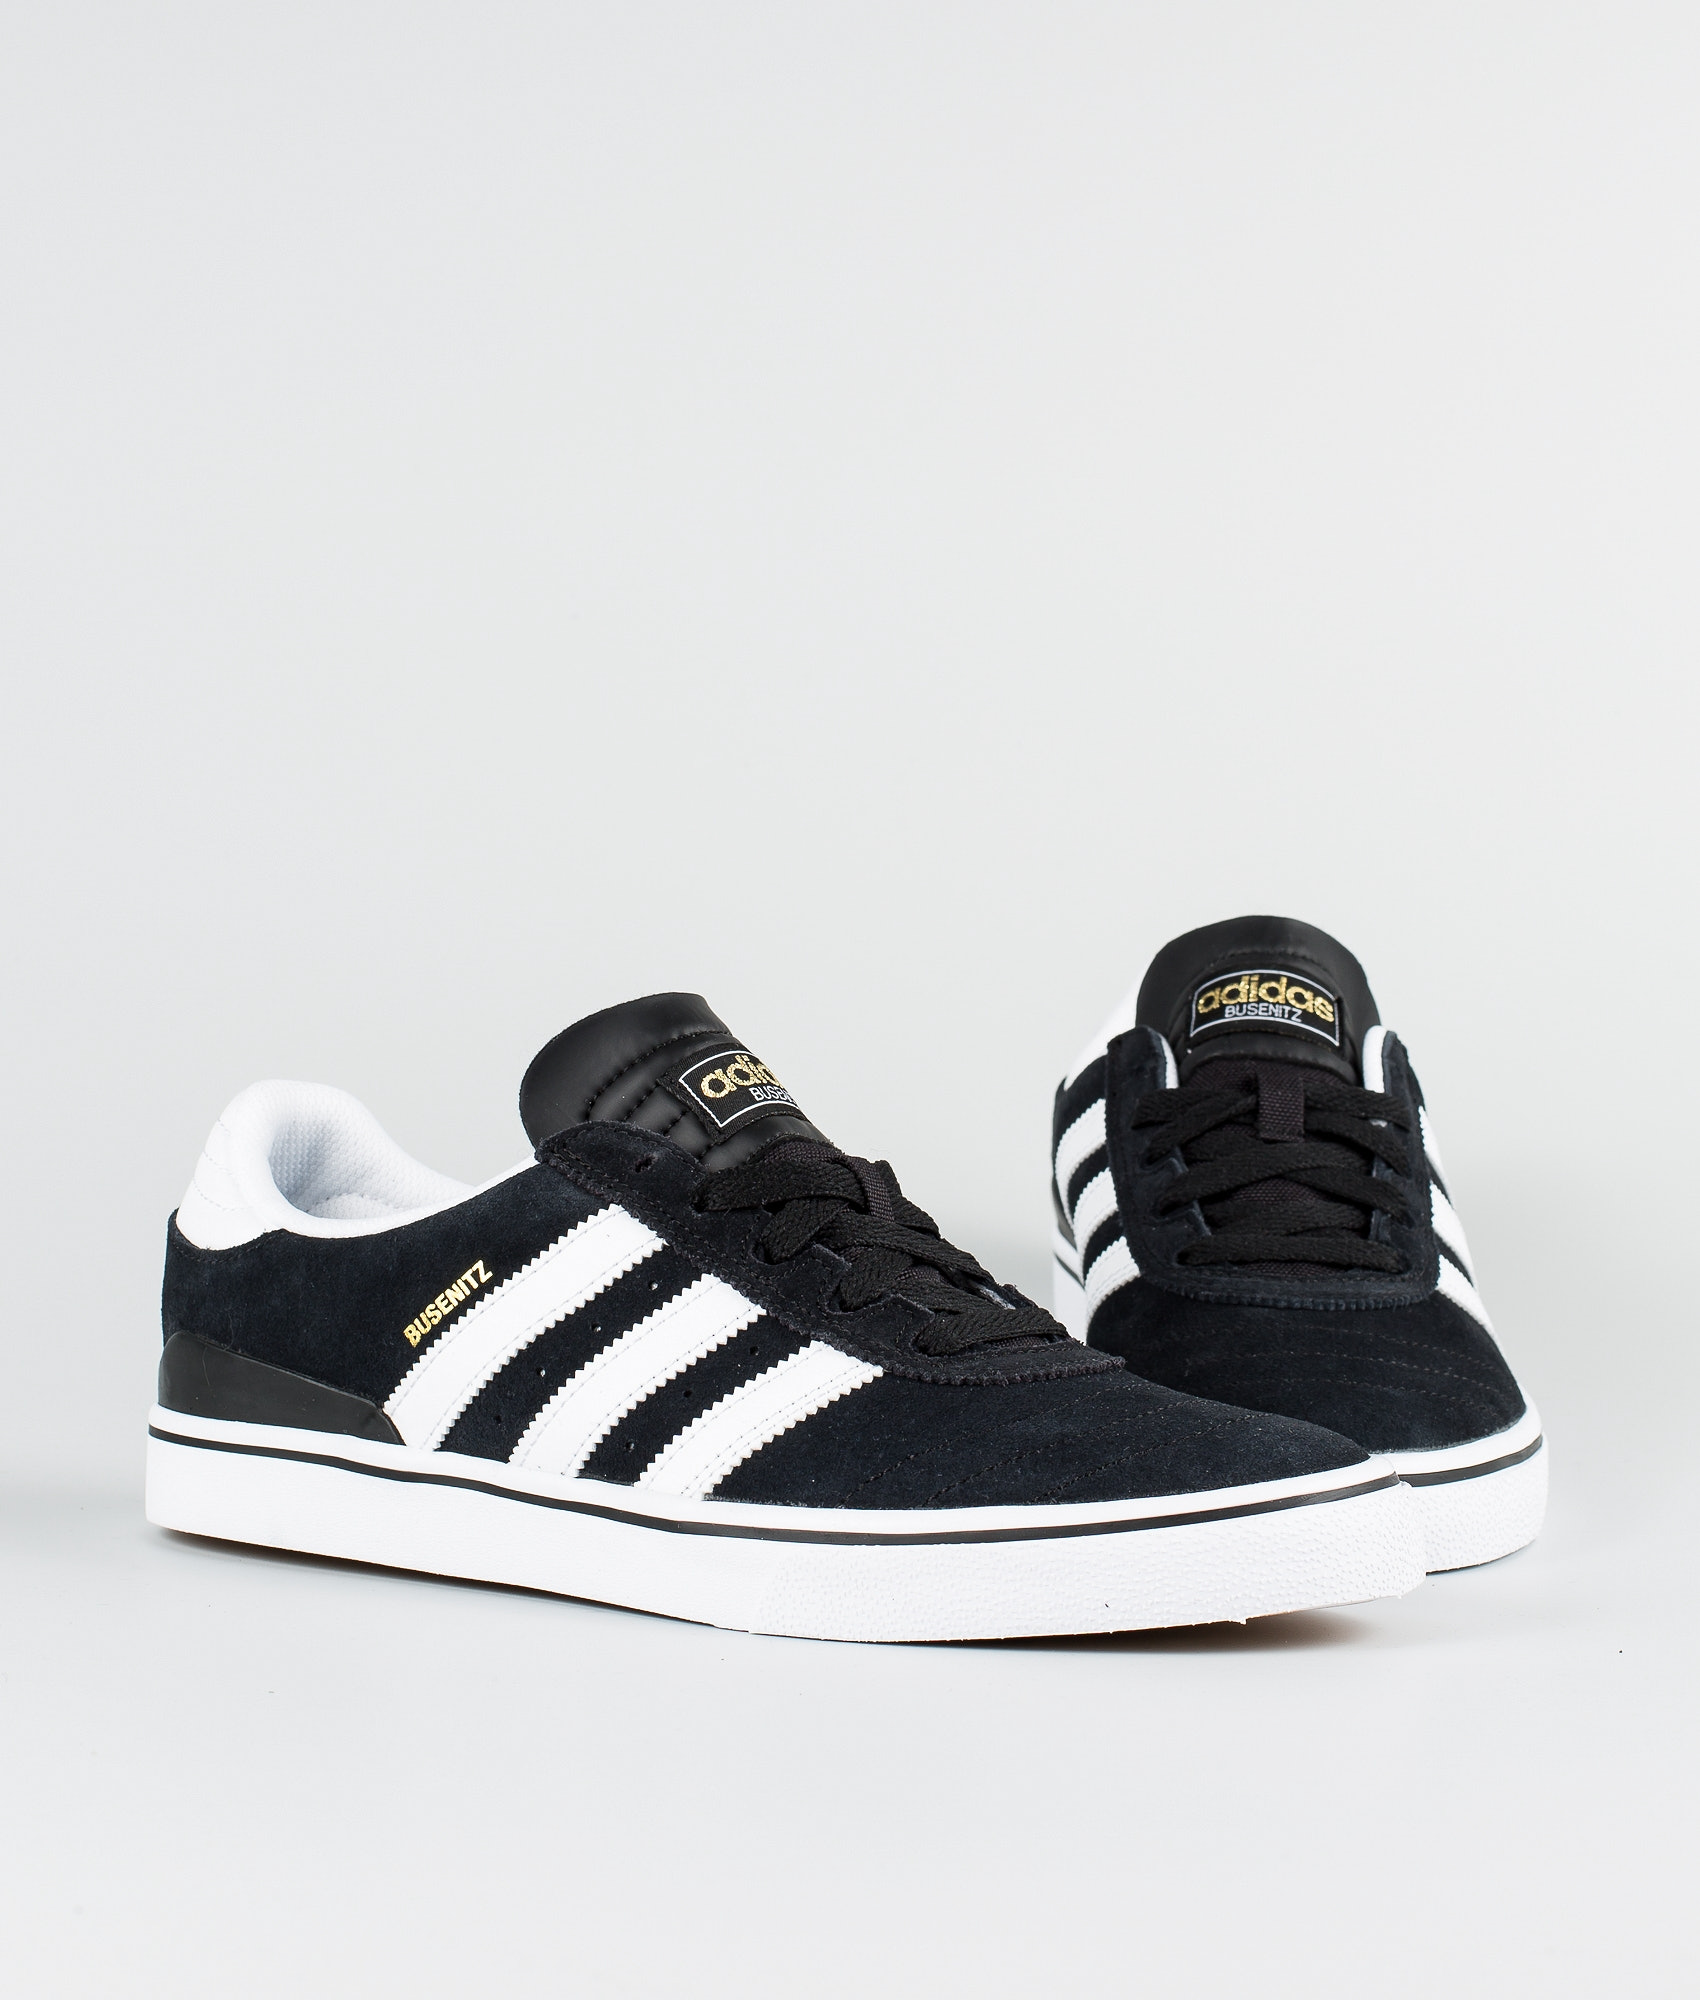 site réputé 26152 515dc Adidas Skateboarding Busenitz Vulc Shoes Black1/Running White/Black1